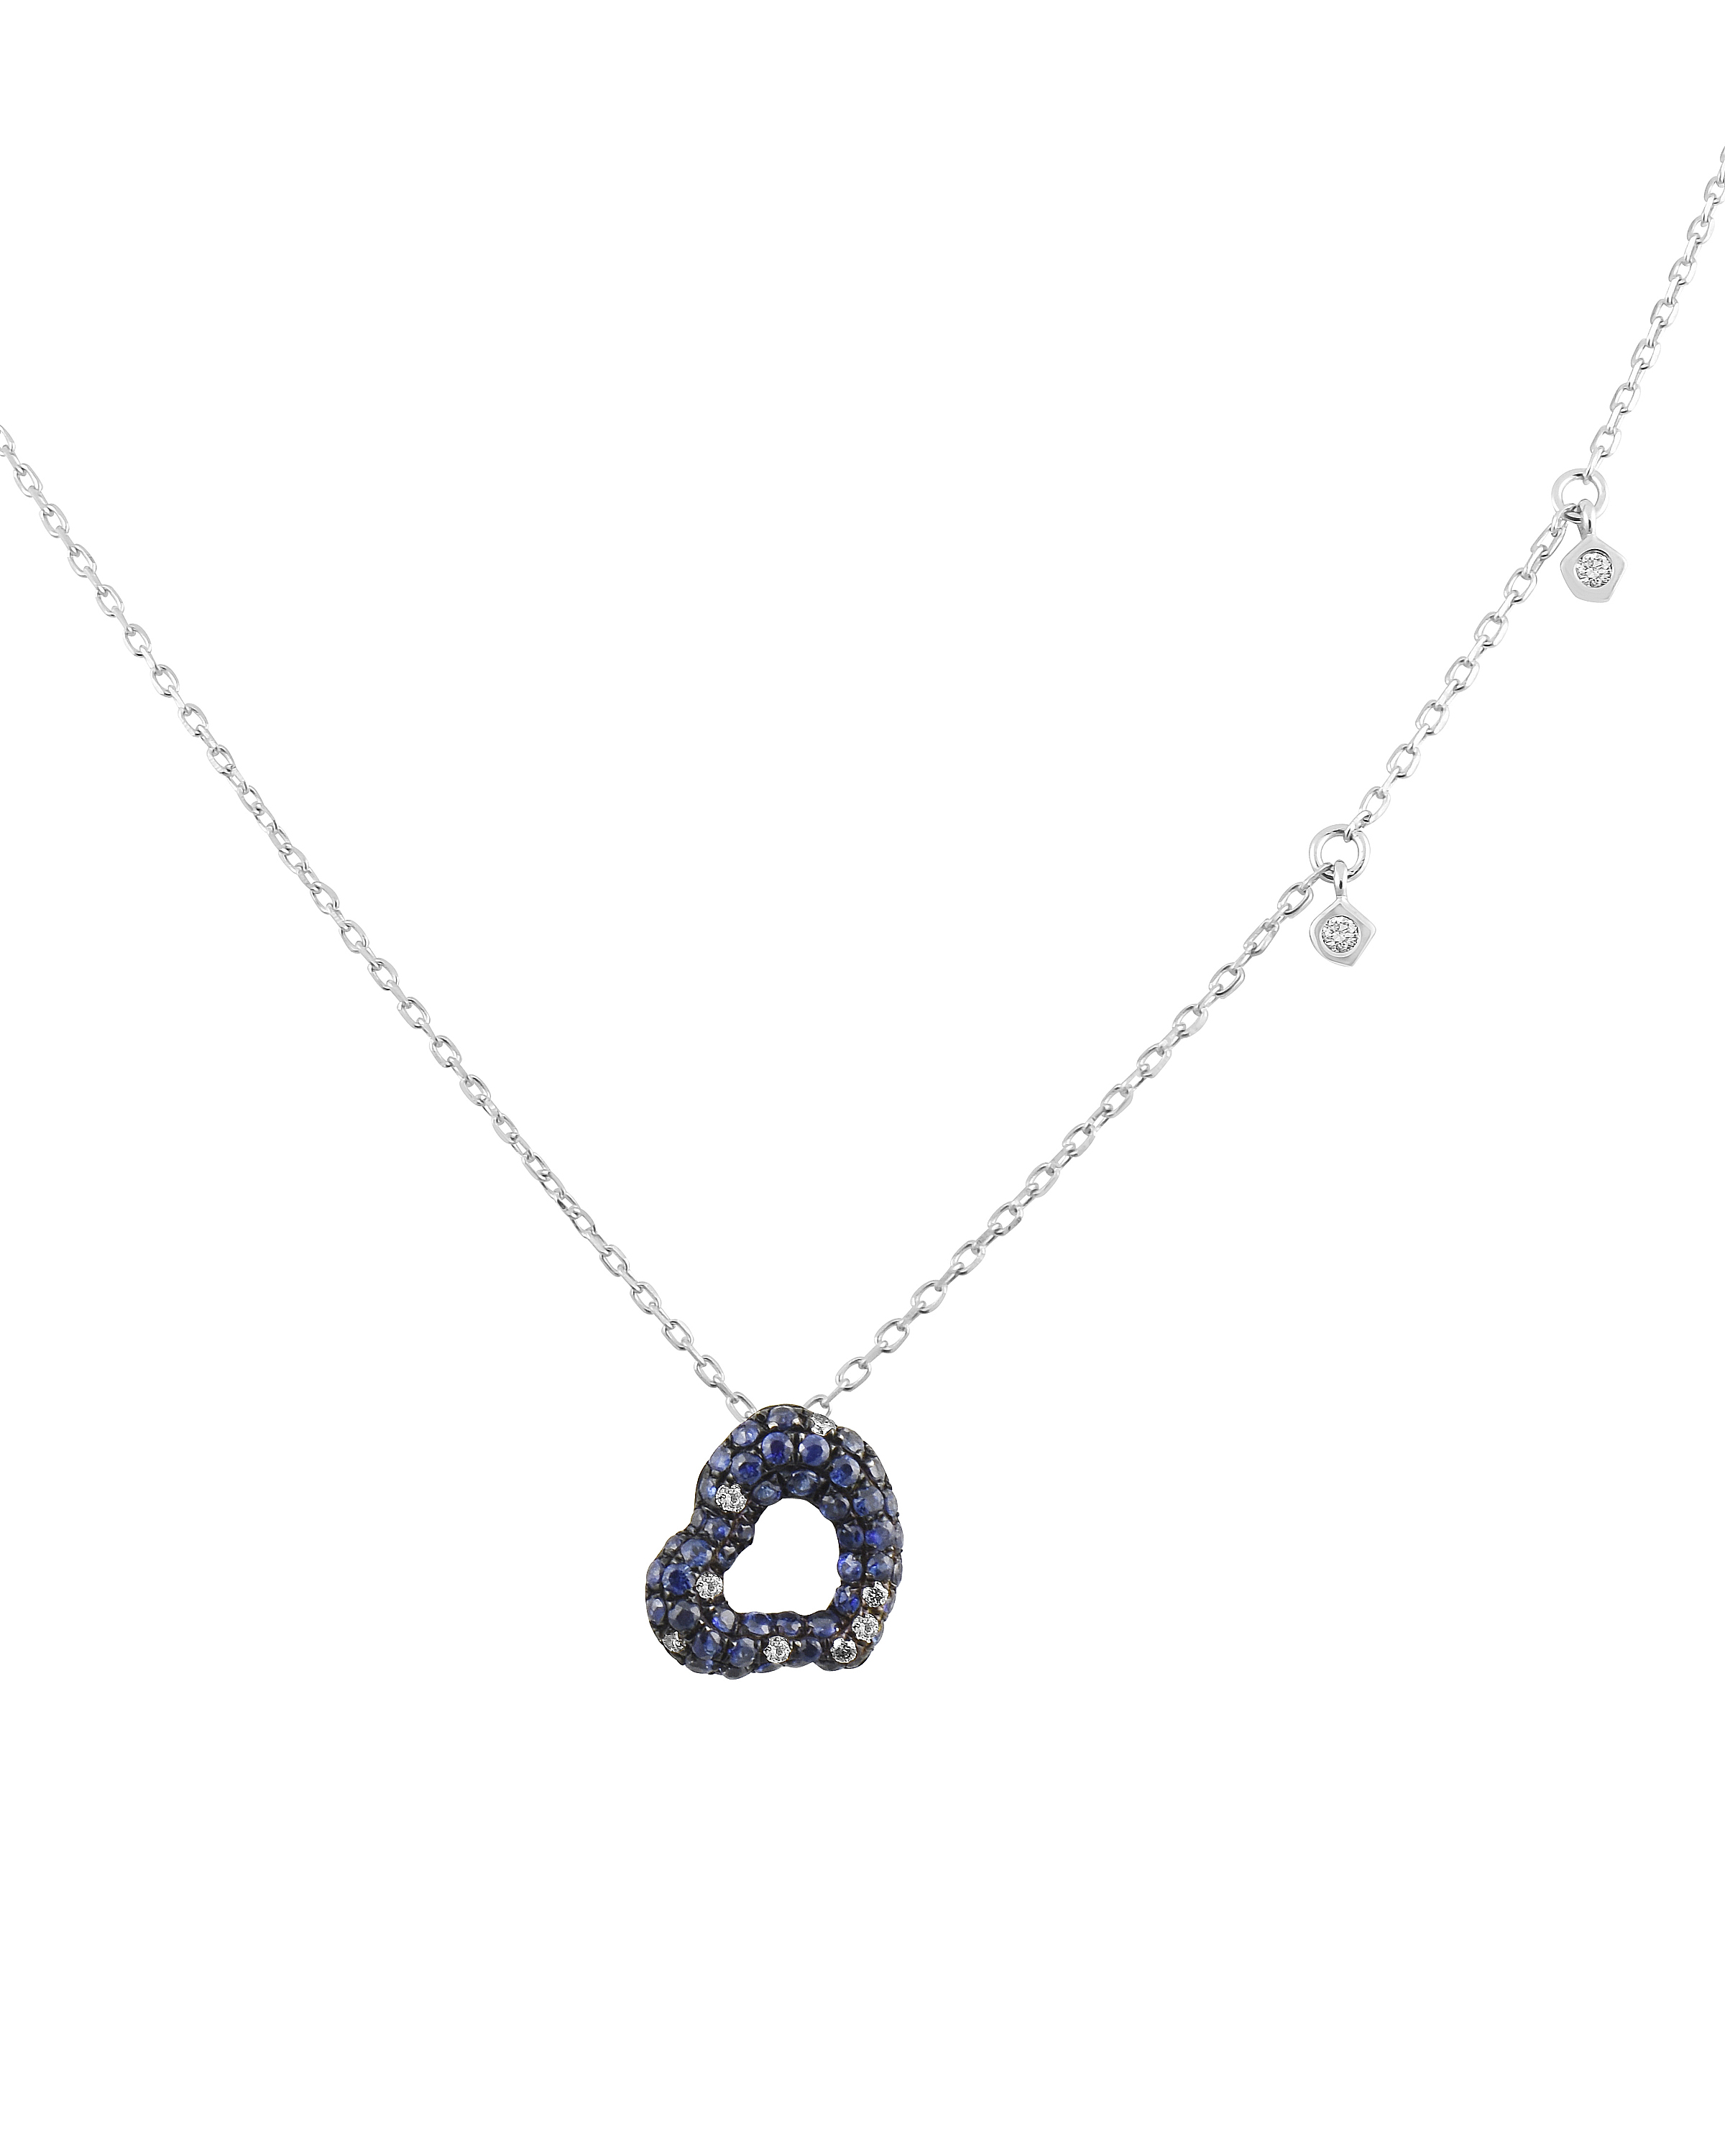 8783d6a66 Blue Diamond and Sapphire 14K White Gold Heart Pendant Necklace